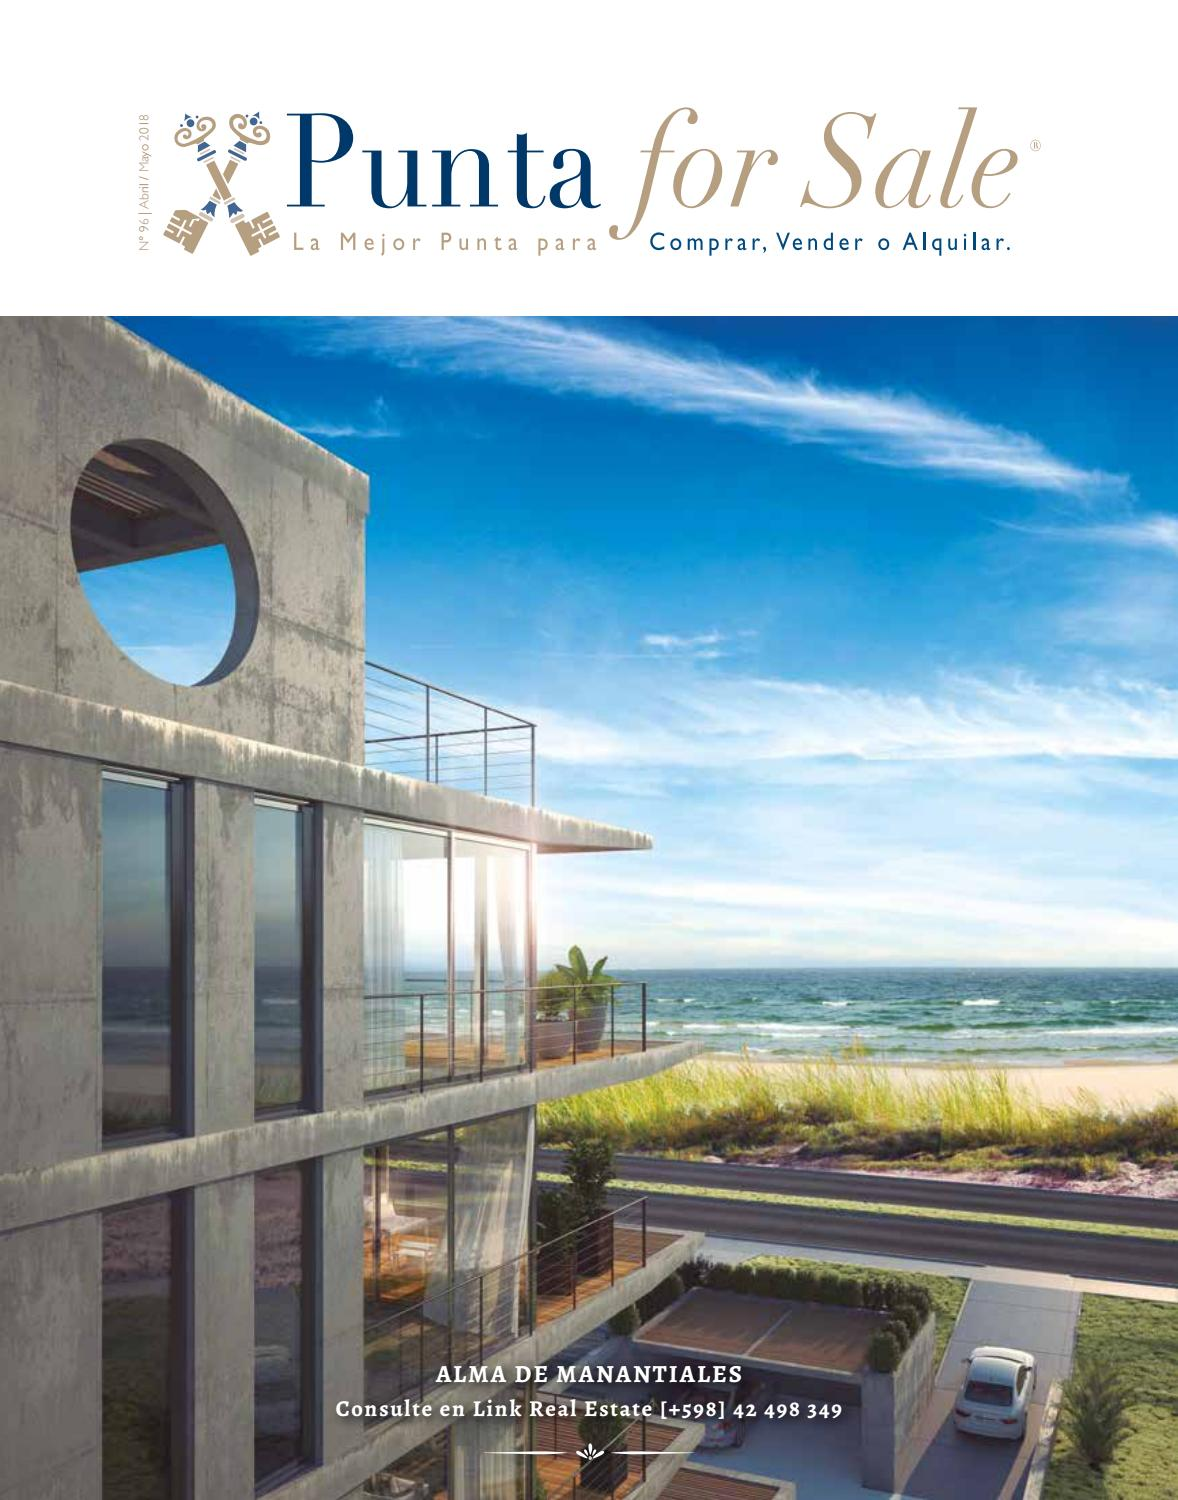 Revista de Real Estate Punta For Sale, edición # 96 Abril / Mayo 2018